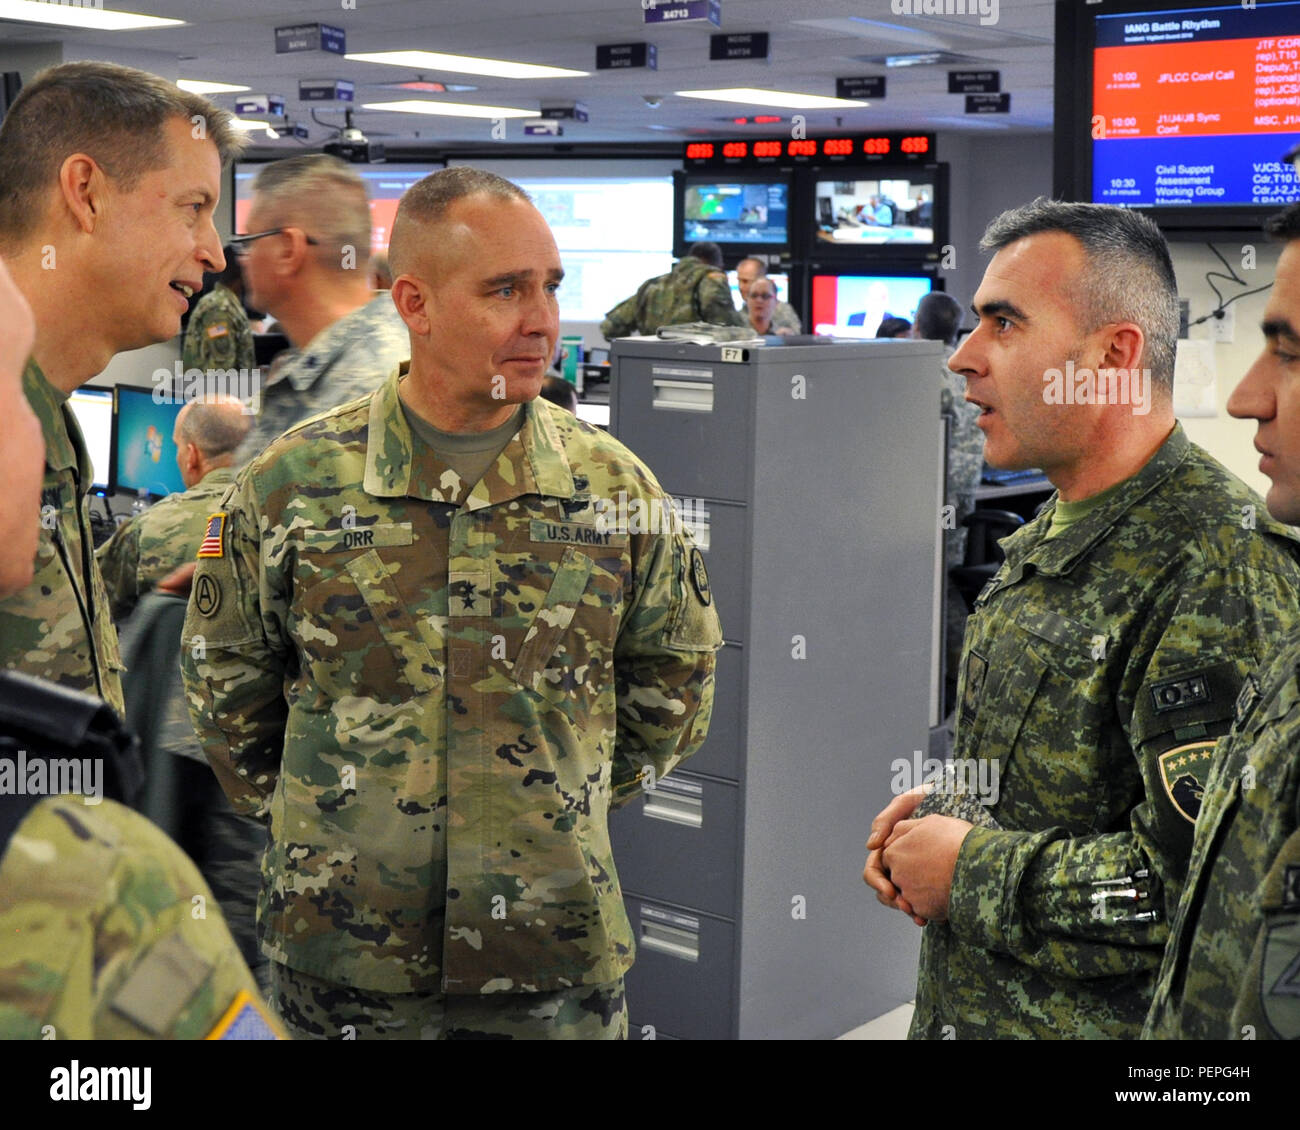 Lt. Gen. Daniel Hokanson (far left), deputy commander, U.S. Northern Command and Maj. Gen. Timothy Orr (center), the adjutant general of Iowa, speak with members of the Kosovo Security Forces in the Joint Operation Center at Joint Forces Headquarters, Johnston, Iowa, on Jan. 13, 2016, during the Vigilant Guard '16 exercise. (Iowa National Guard photo by Tech. Sgt. Michael B. McGhee) Stock Photo